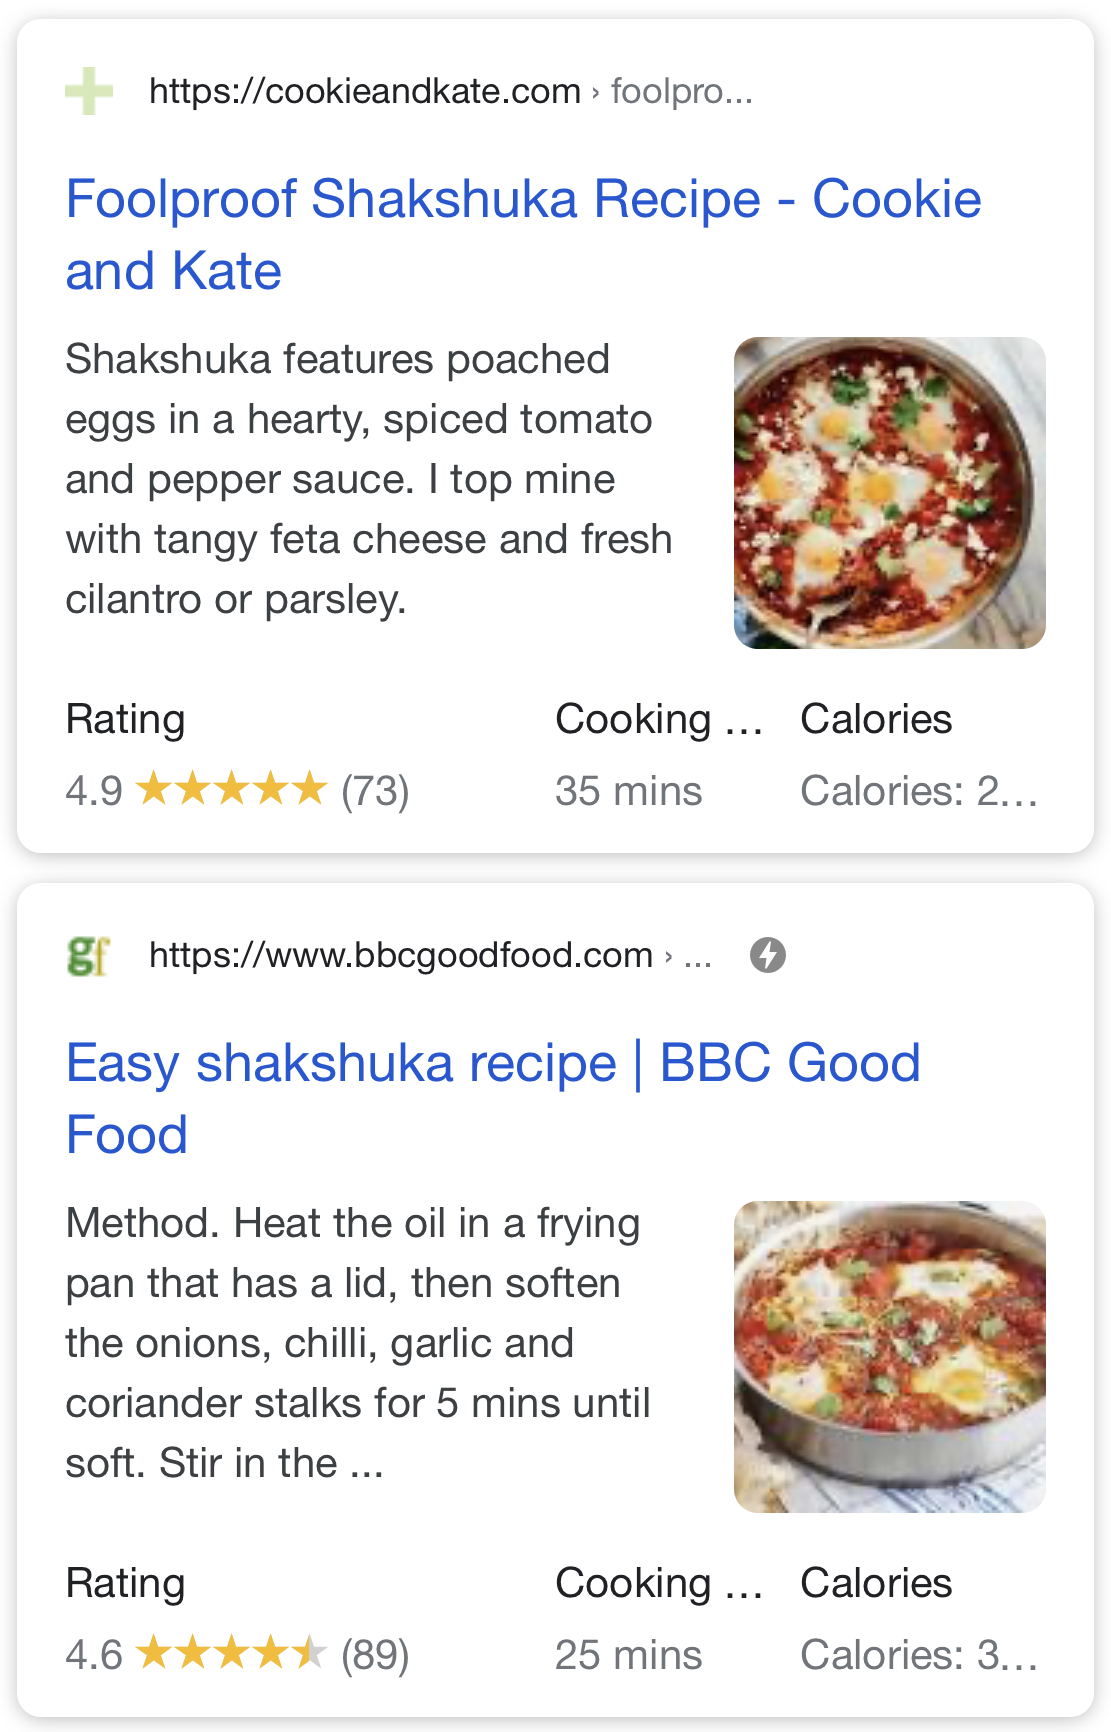 Recipes Rich Snippets in SERP.